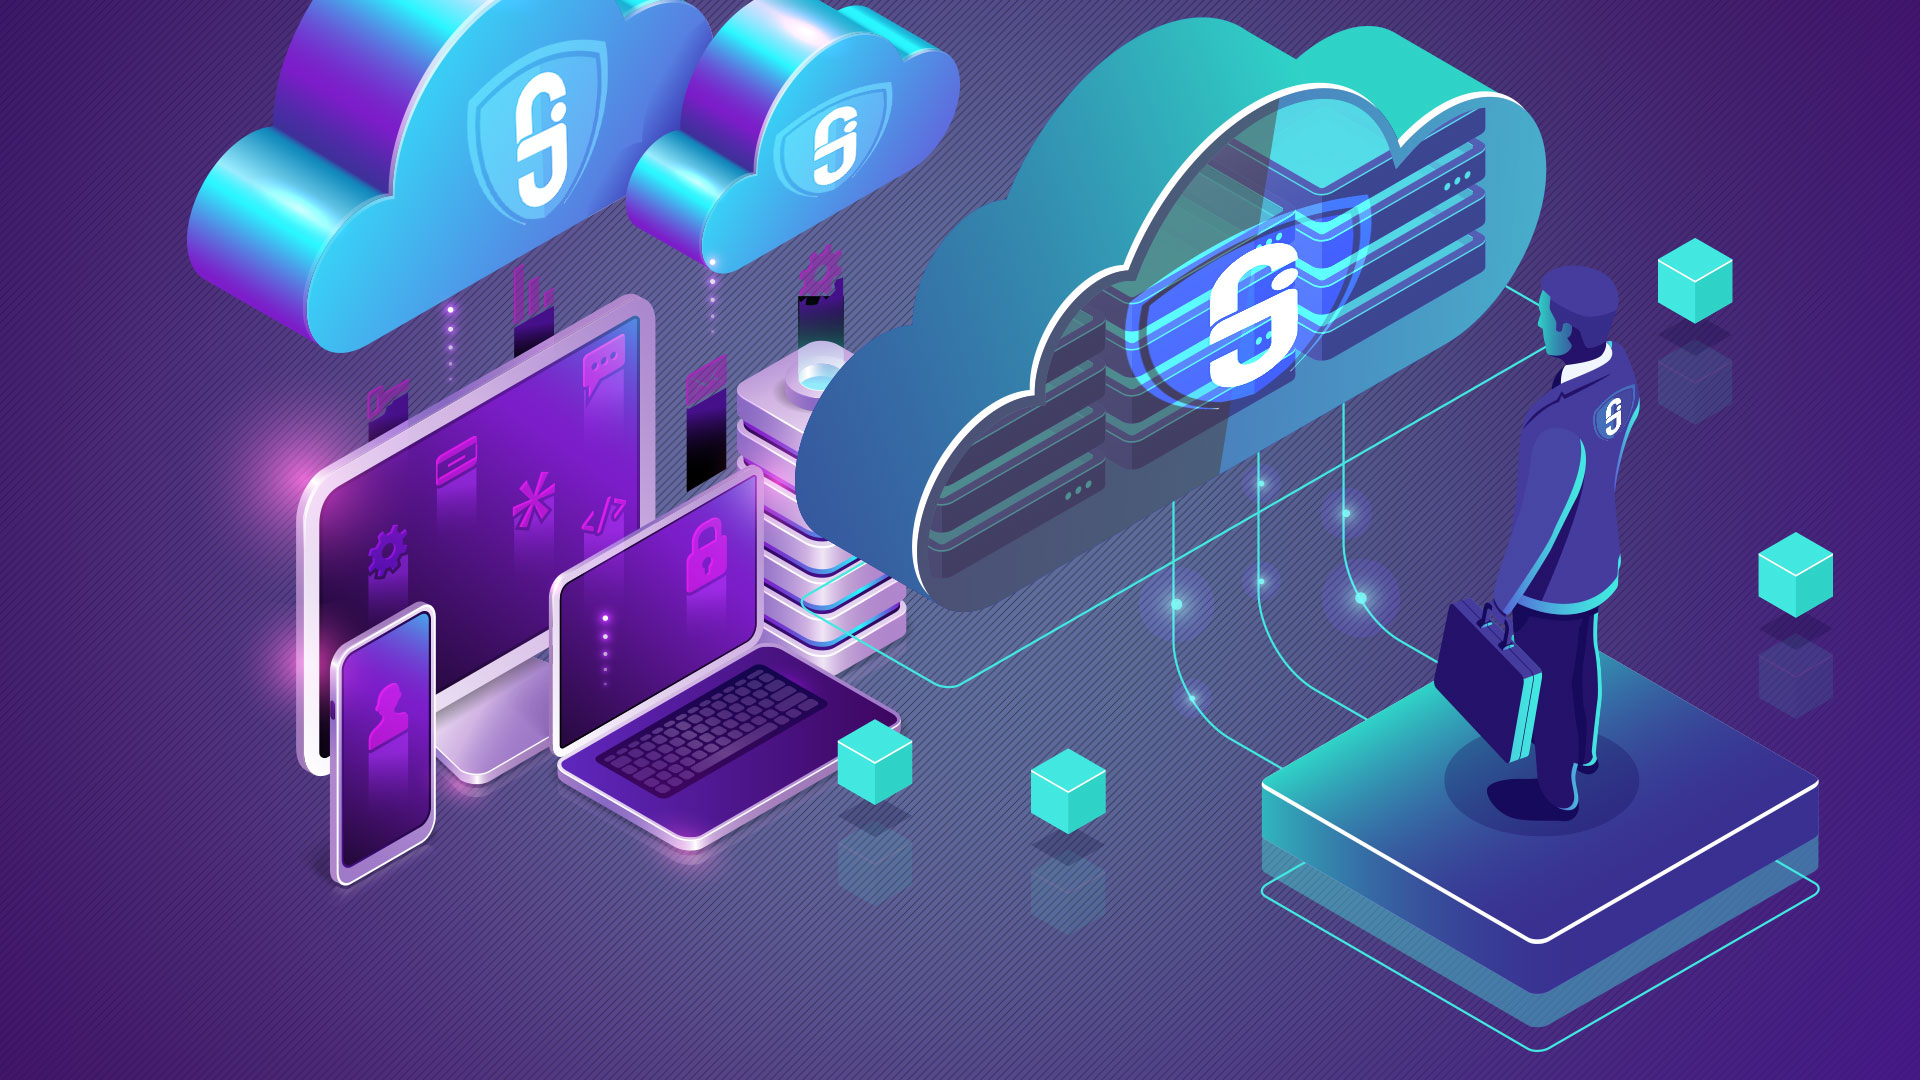 Cloud Security banner